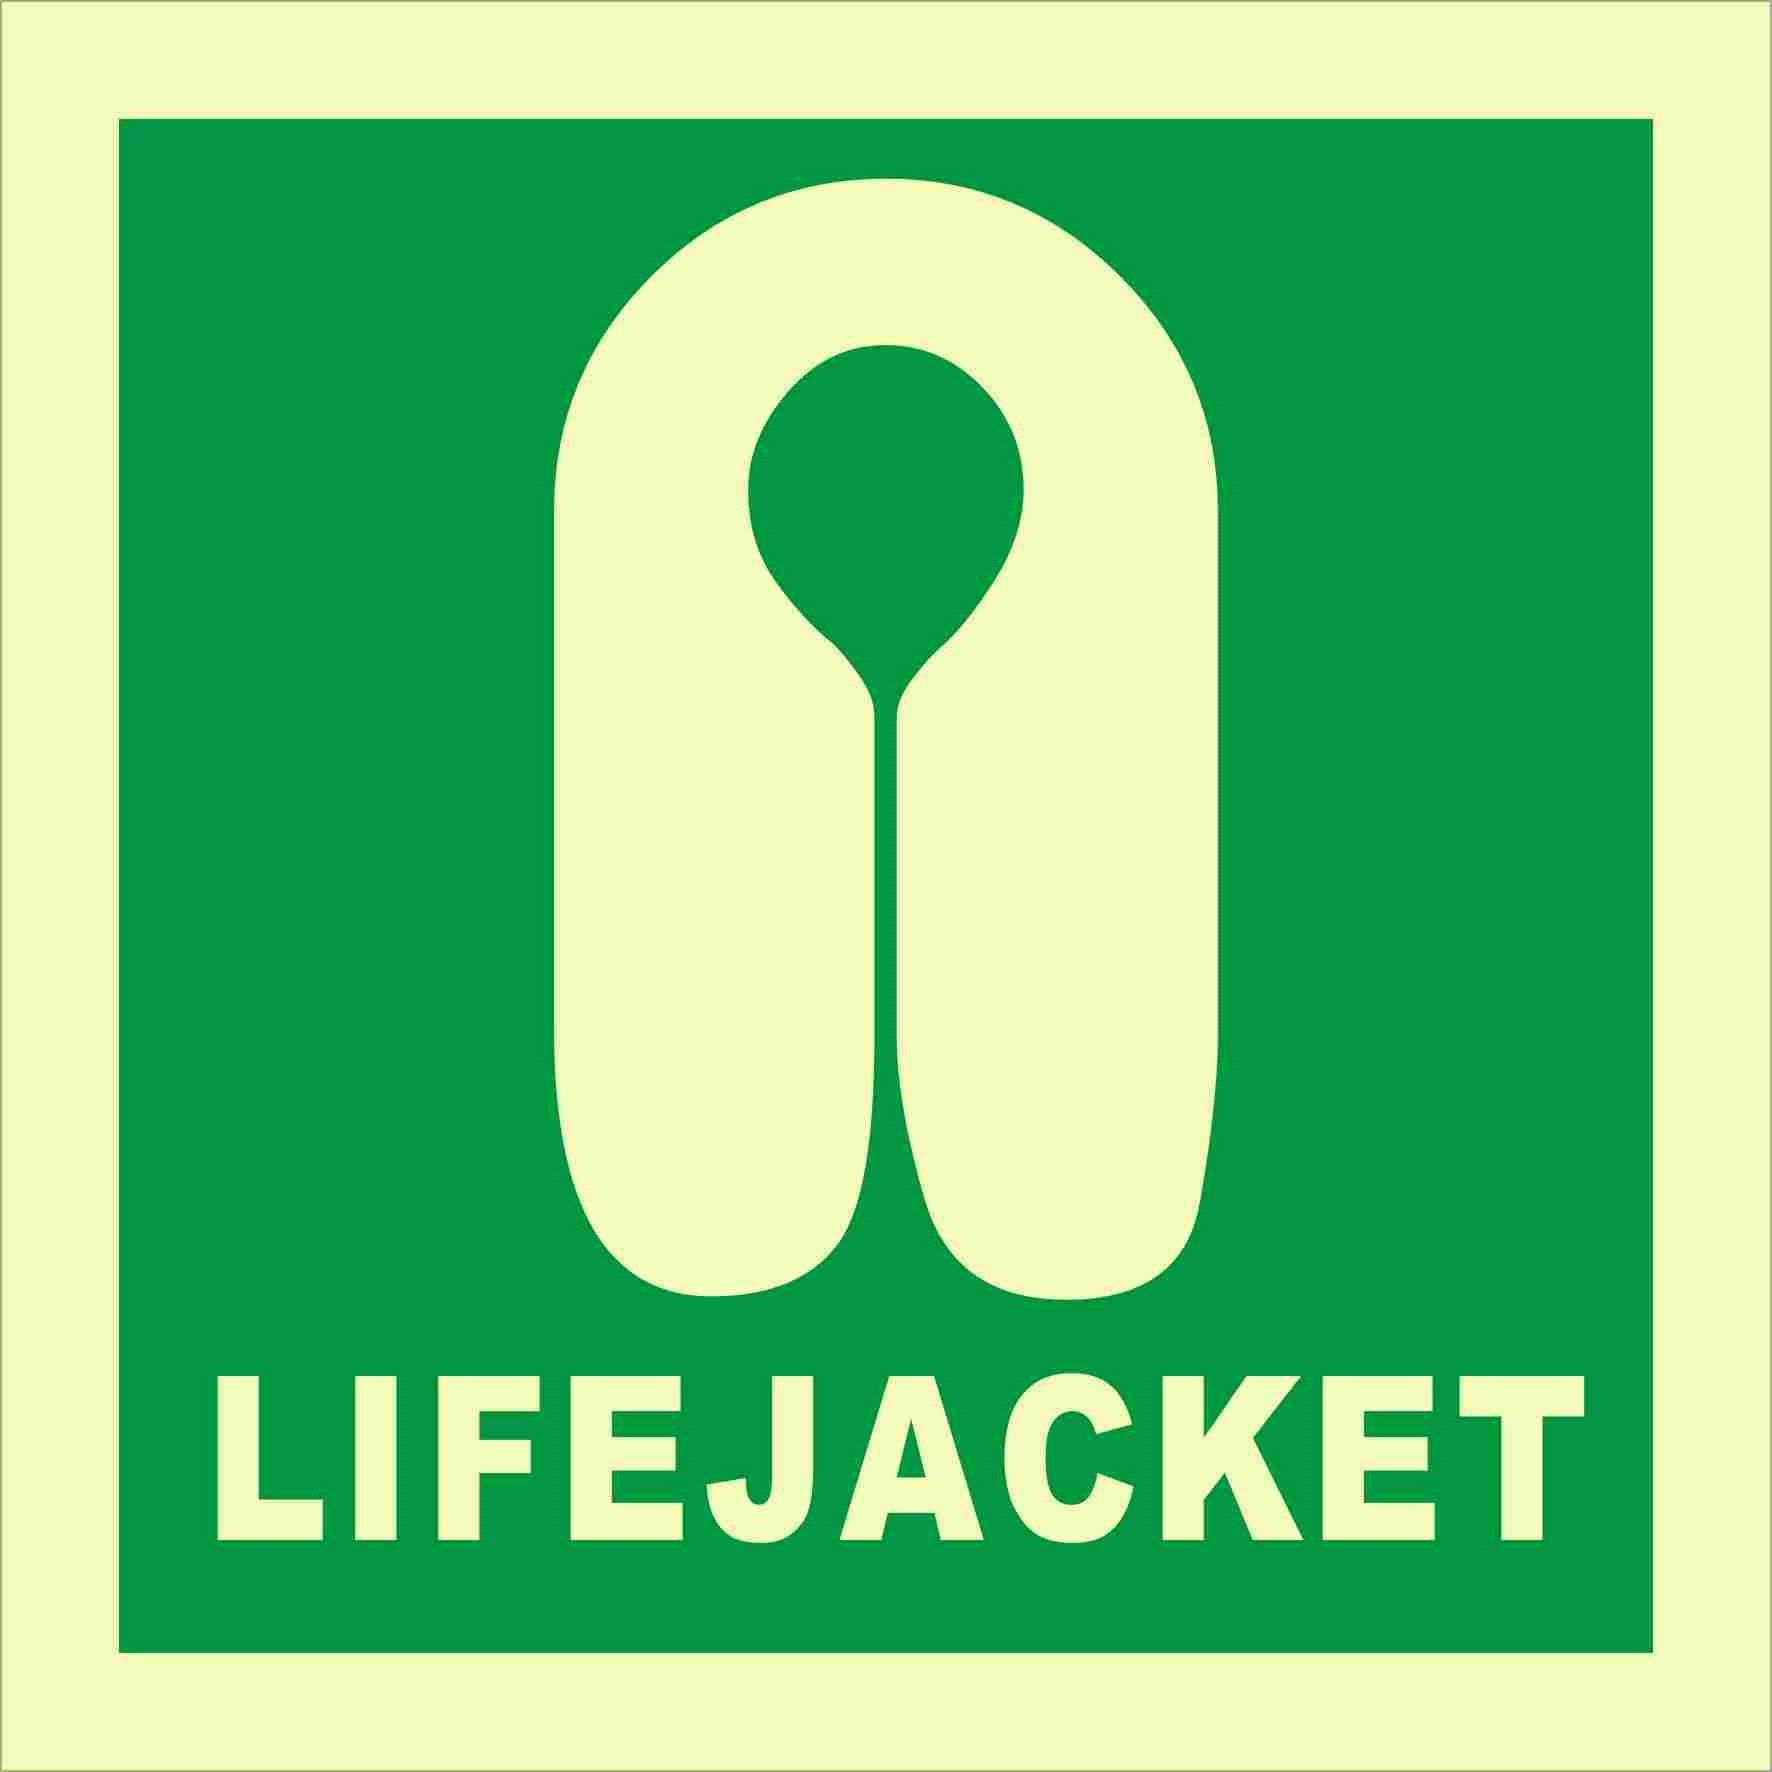 Marine Safety Signs Lifejacket From China Manufacturer